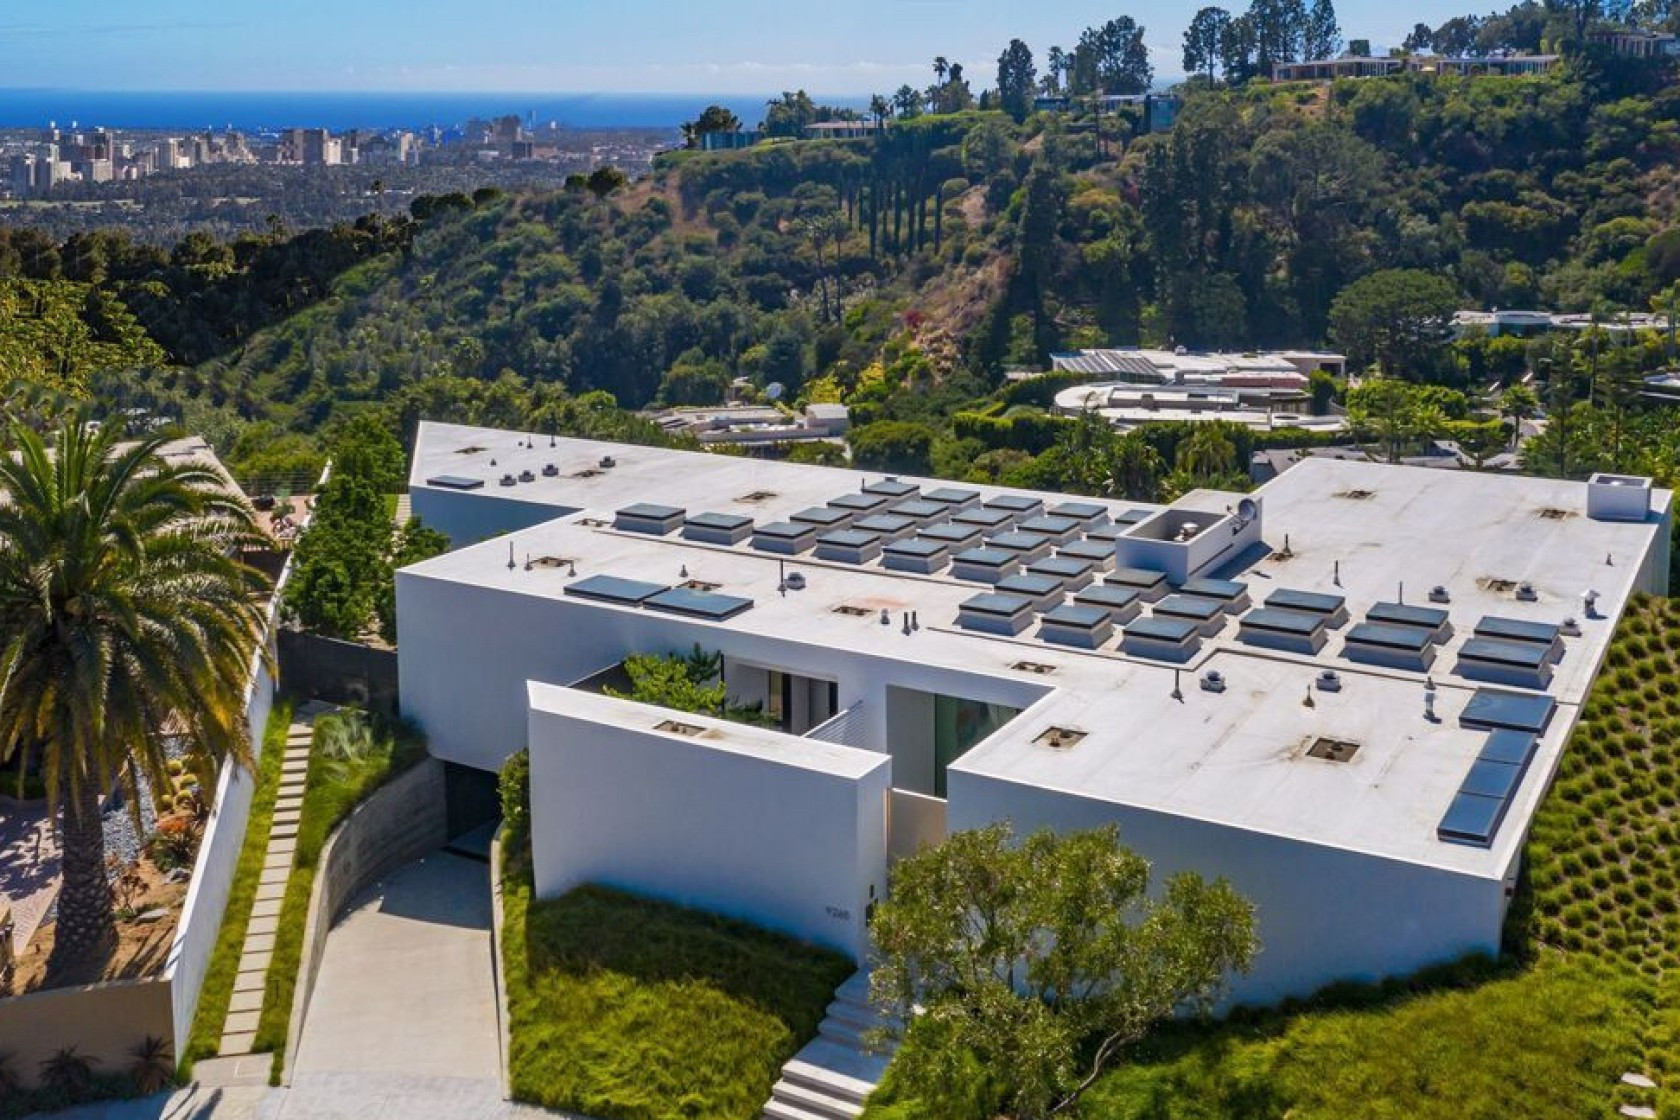 Los Angeles 2028 President Wasserman snaps up $23 million home